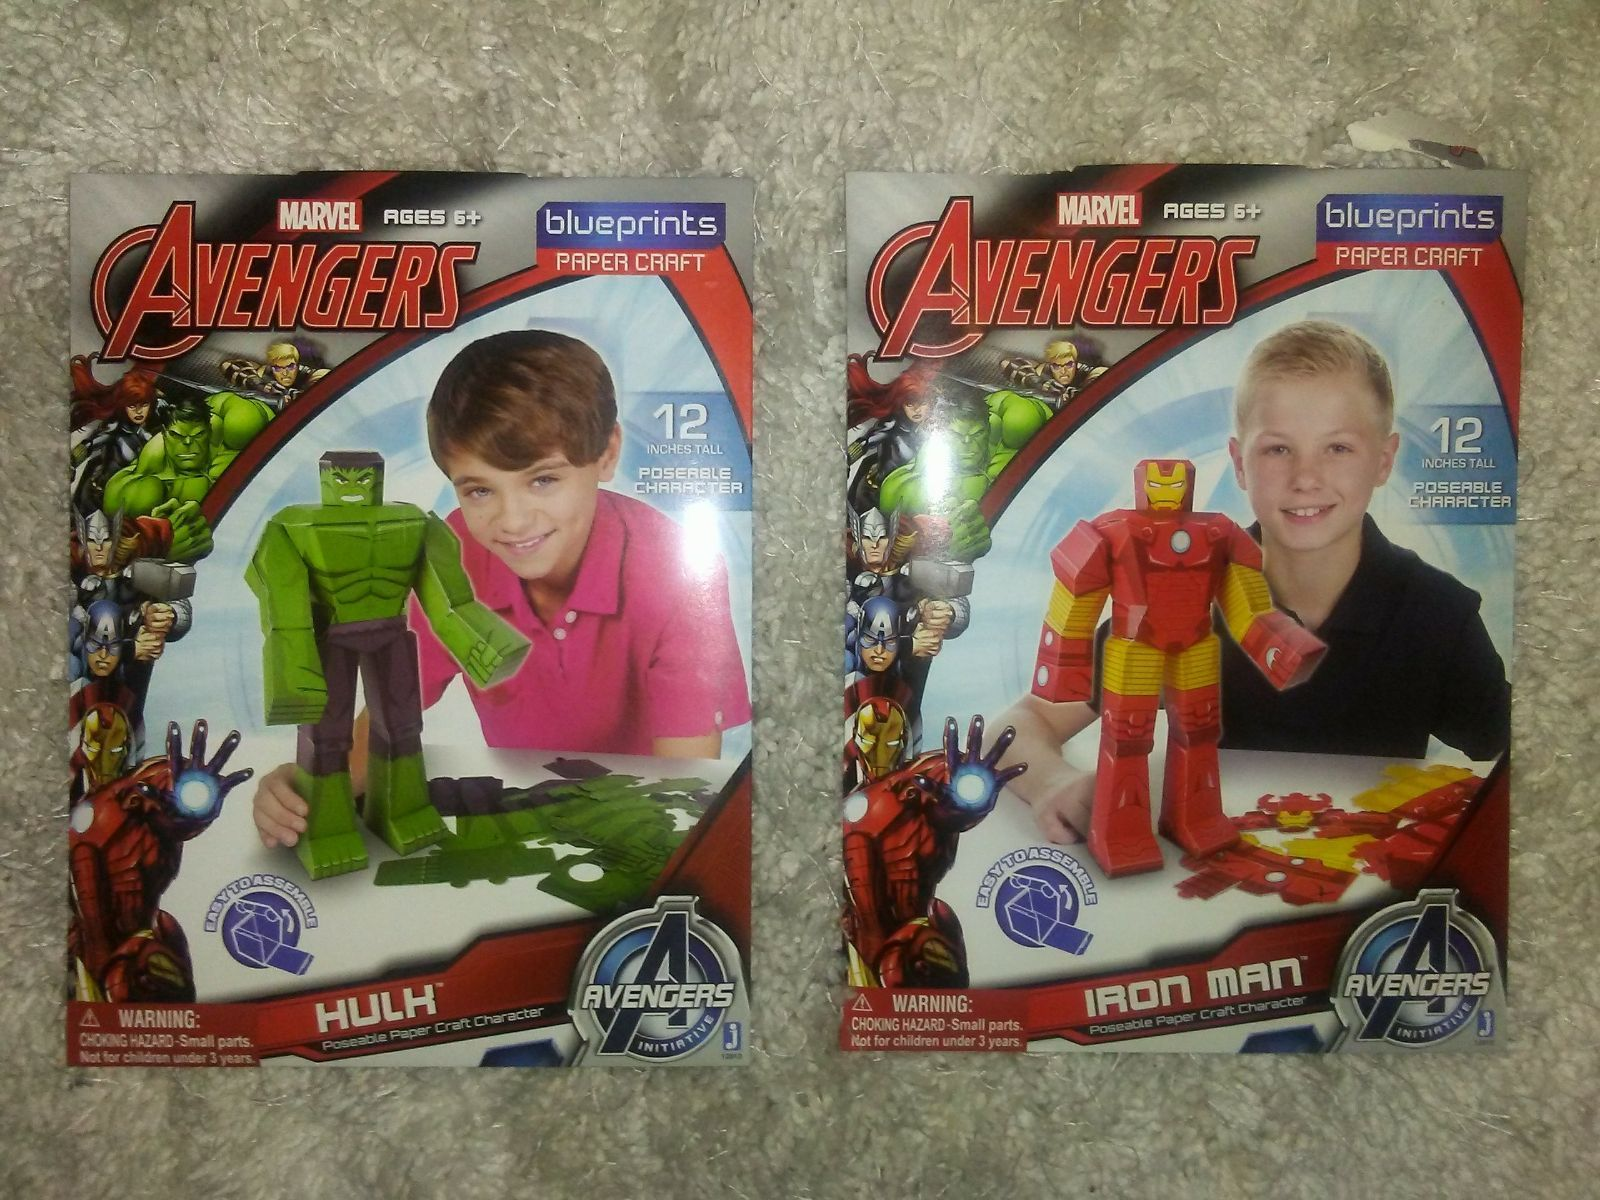 Avengers Iron Man 12-Inch Marvel Blueprints Papercraft Build Your Own